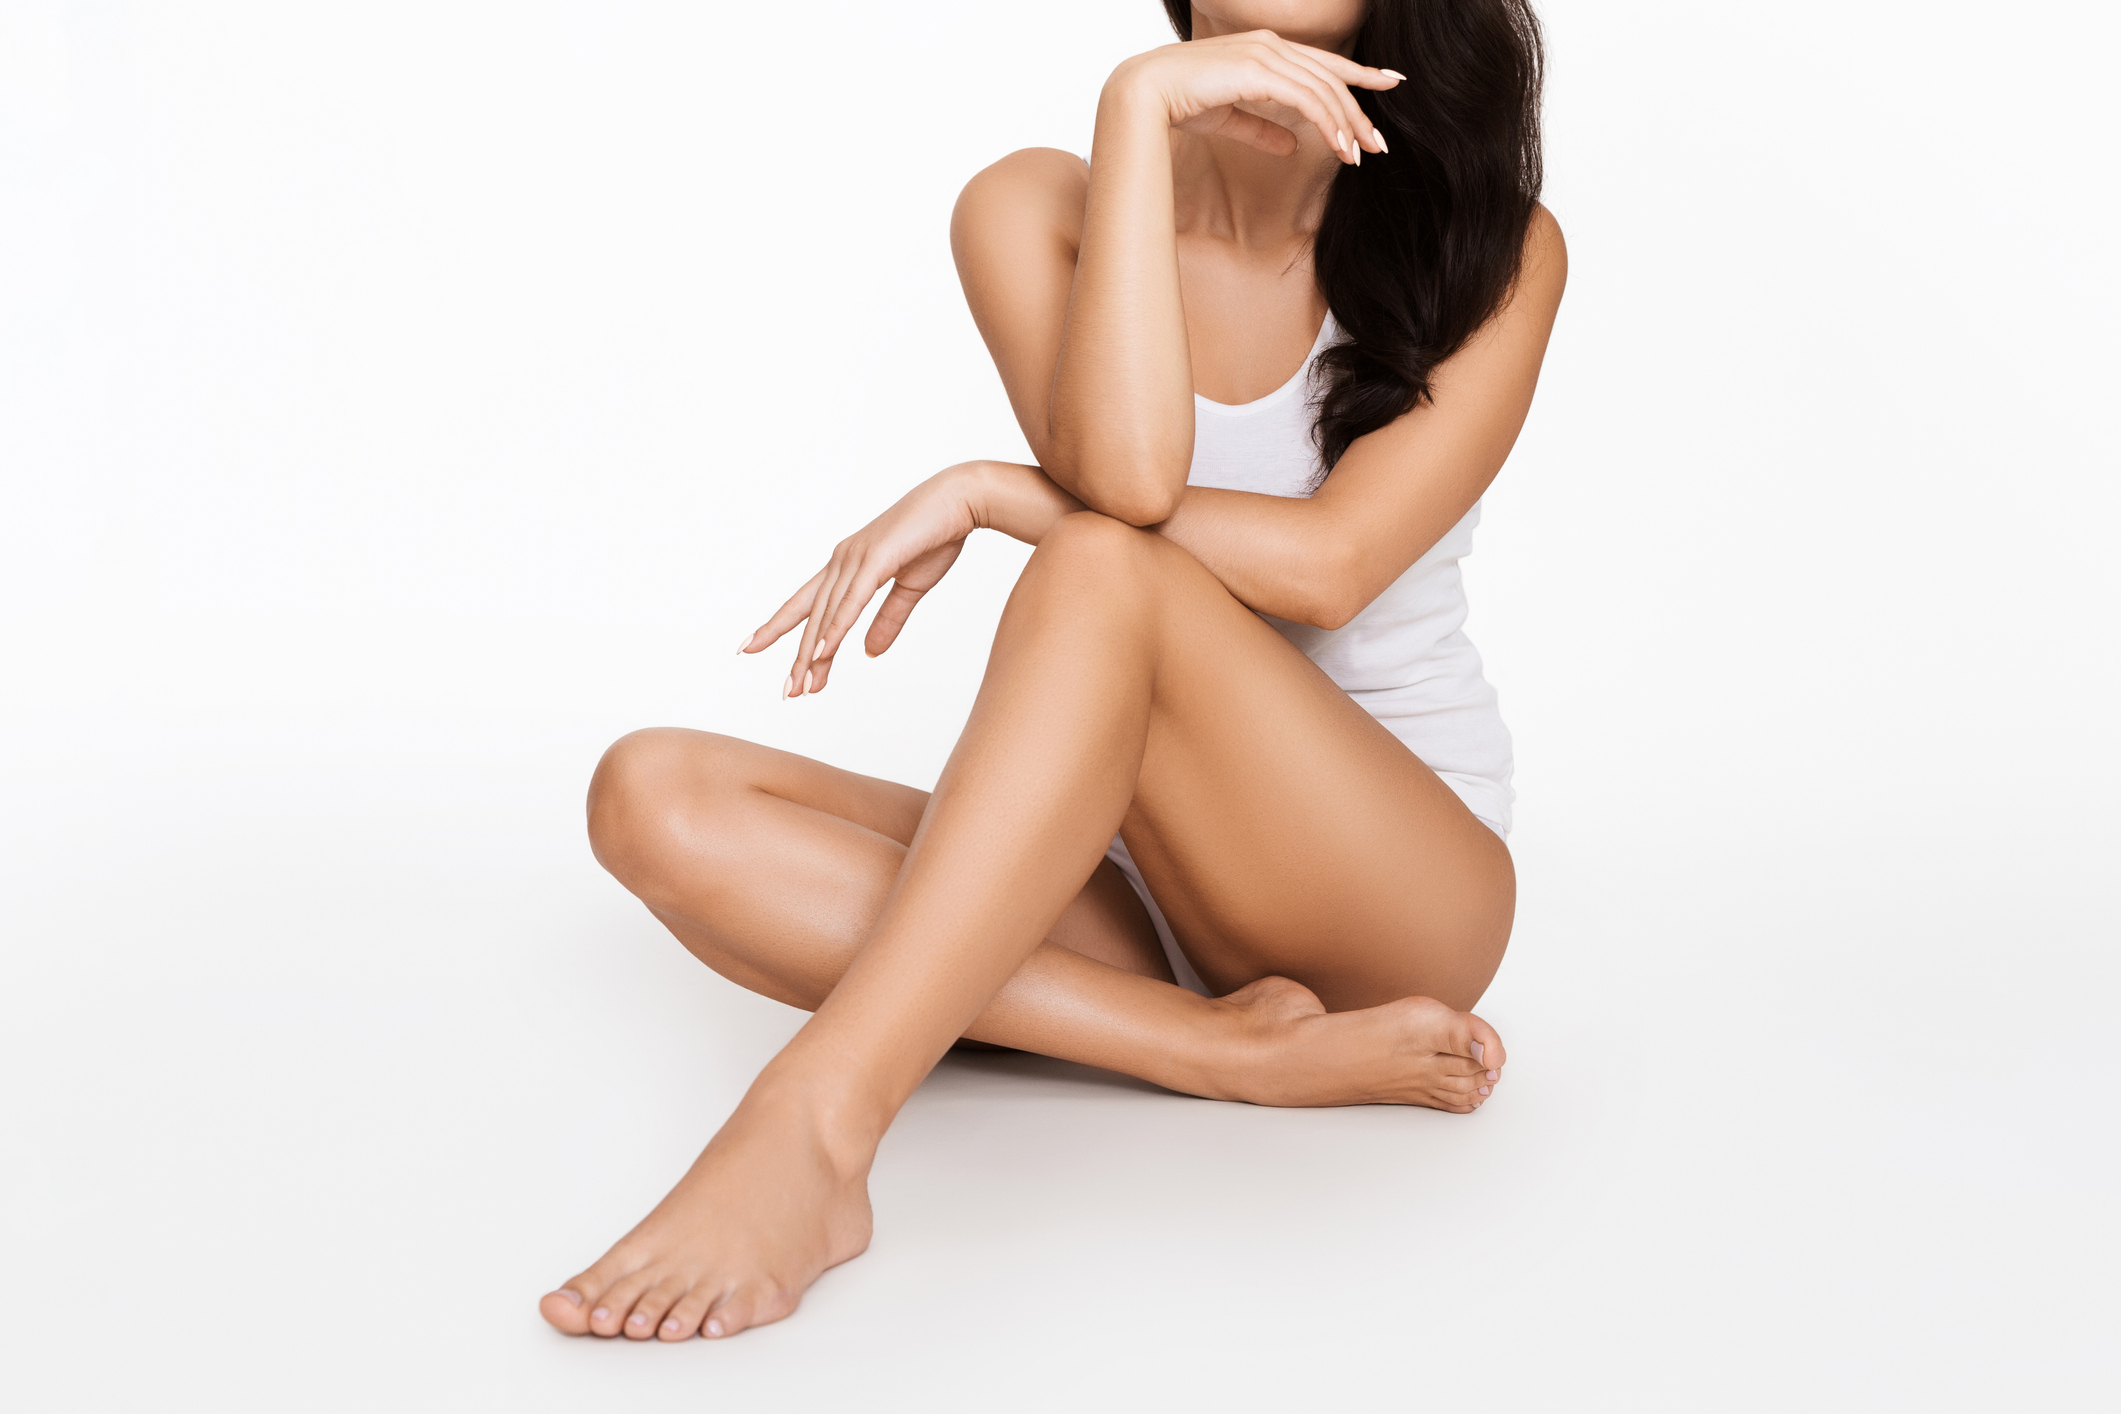 Alivana Blog | What Happens During Laser Hair Removal, and What Should I Avoid After Treatment?